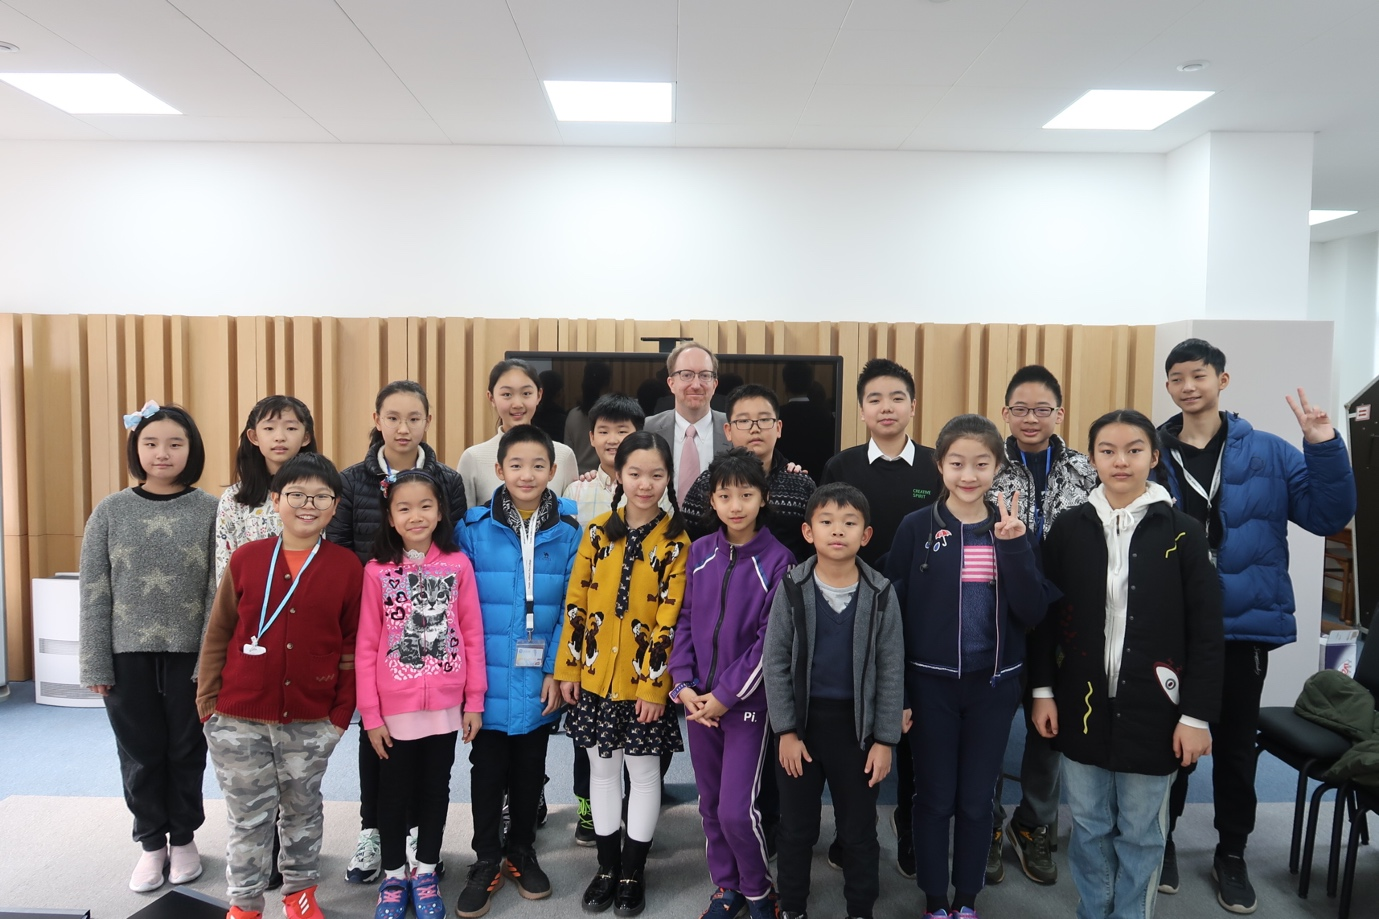 Robert Ross with Tianjin Juilliard Pre-College students in Tianjin, China. Photo credit: Sophie Zhang